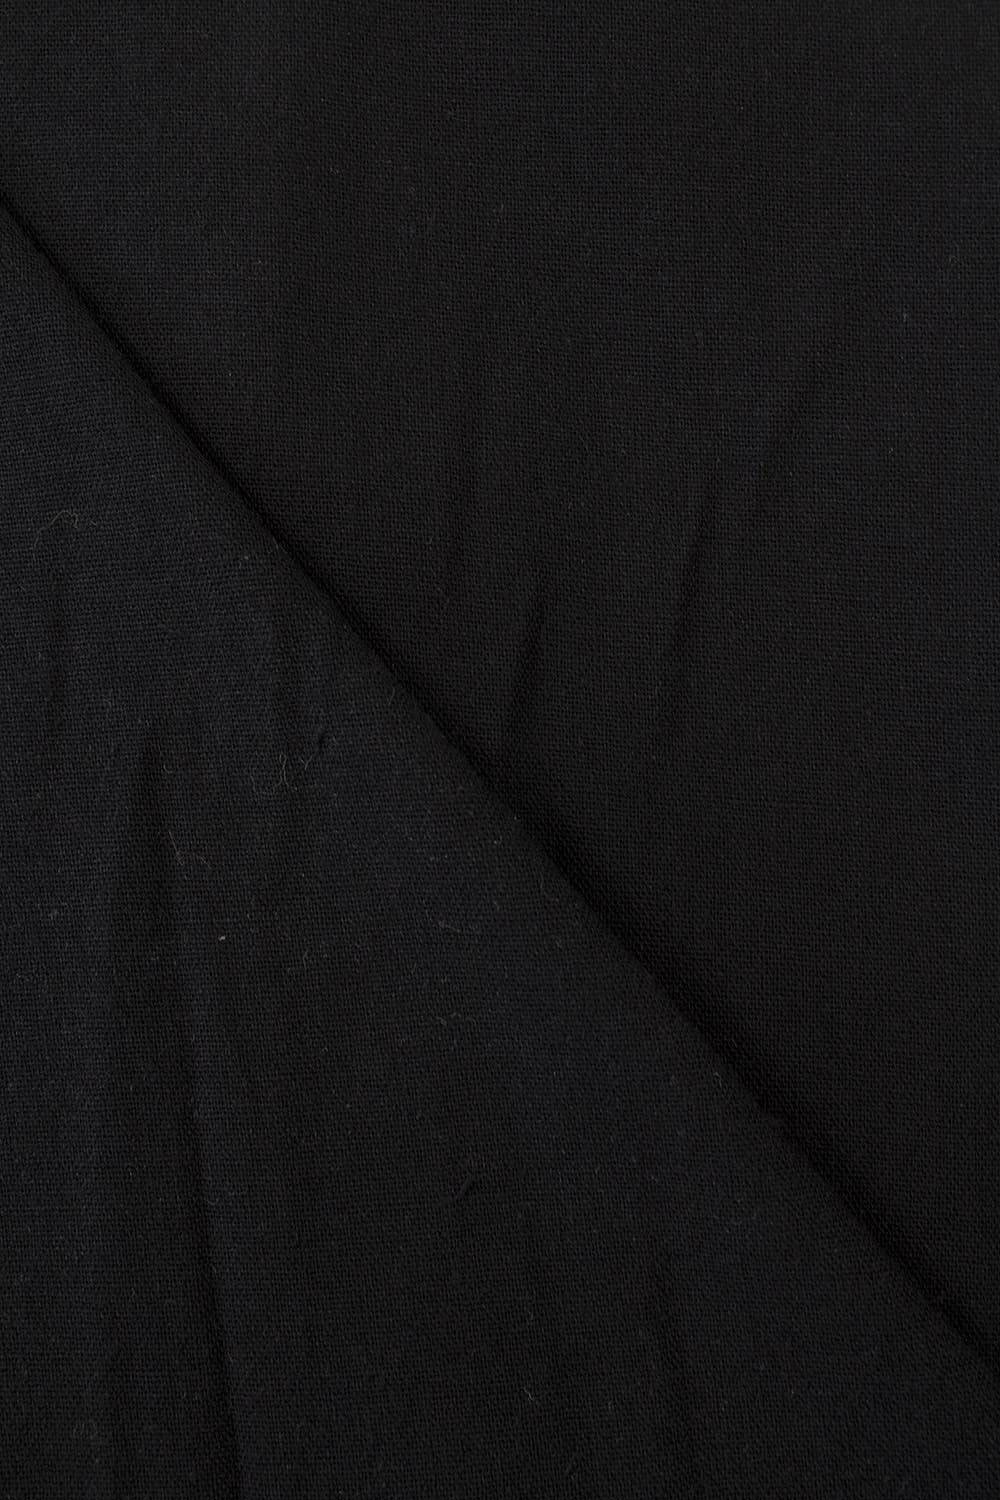 Fabric - Norris - Black - 170 cm - 130 g/m2